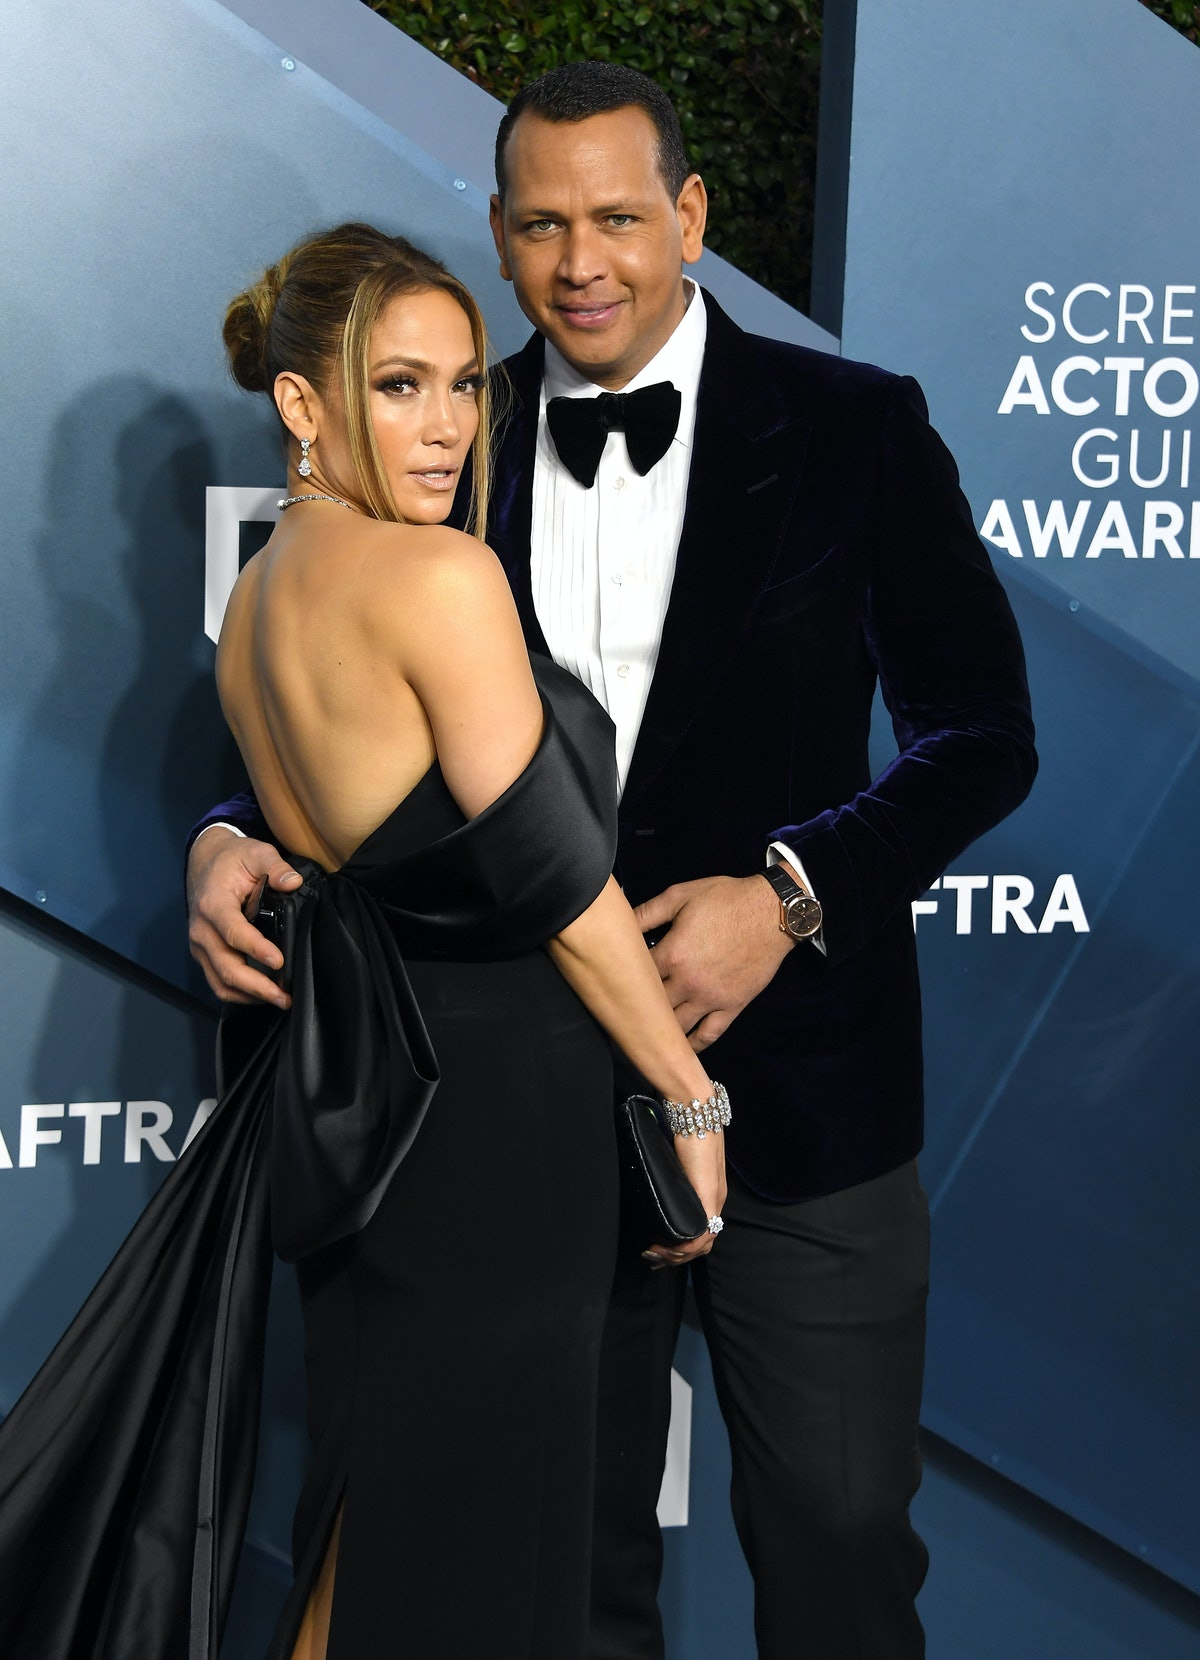 Alex Rodriguez reportedly isn't happy about Jennifer Lopez's relationship with Ben Affleck